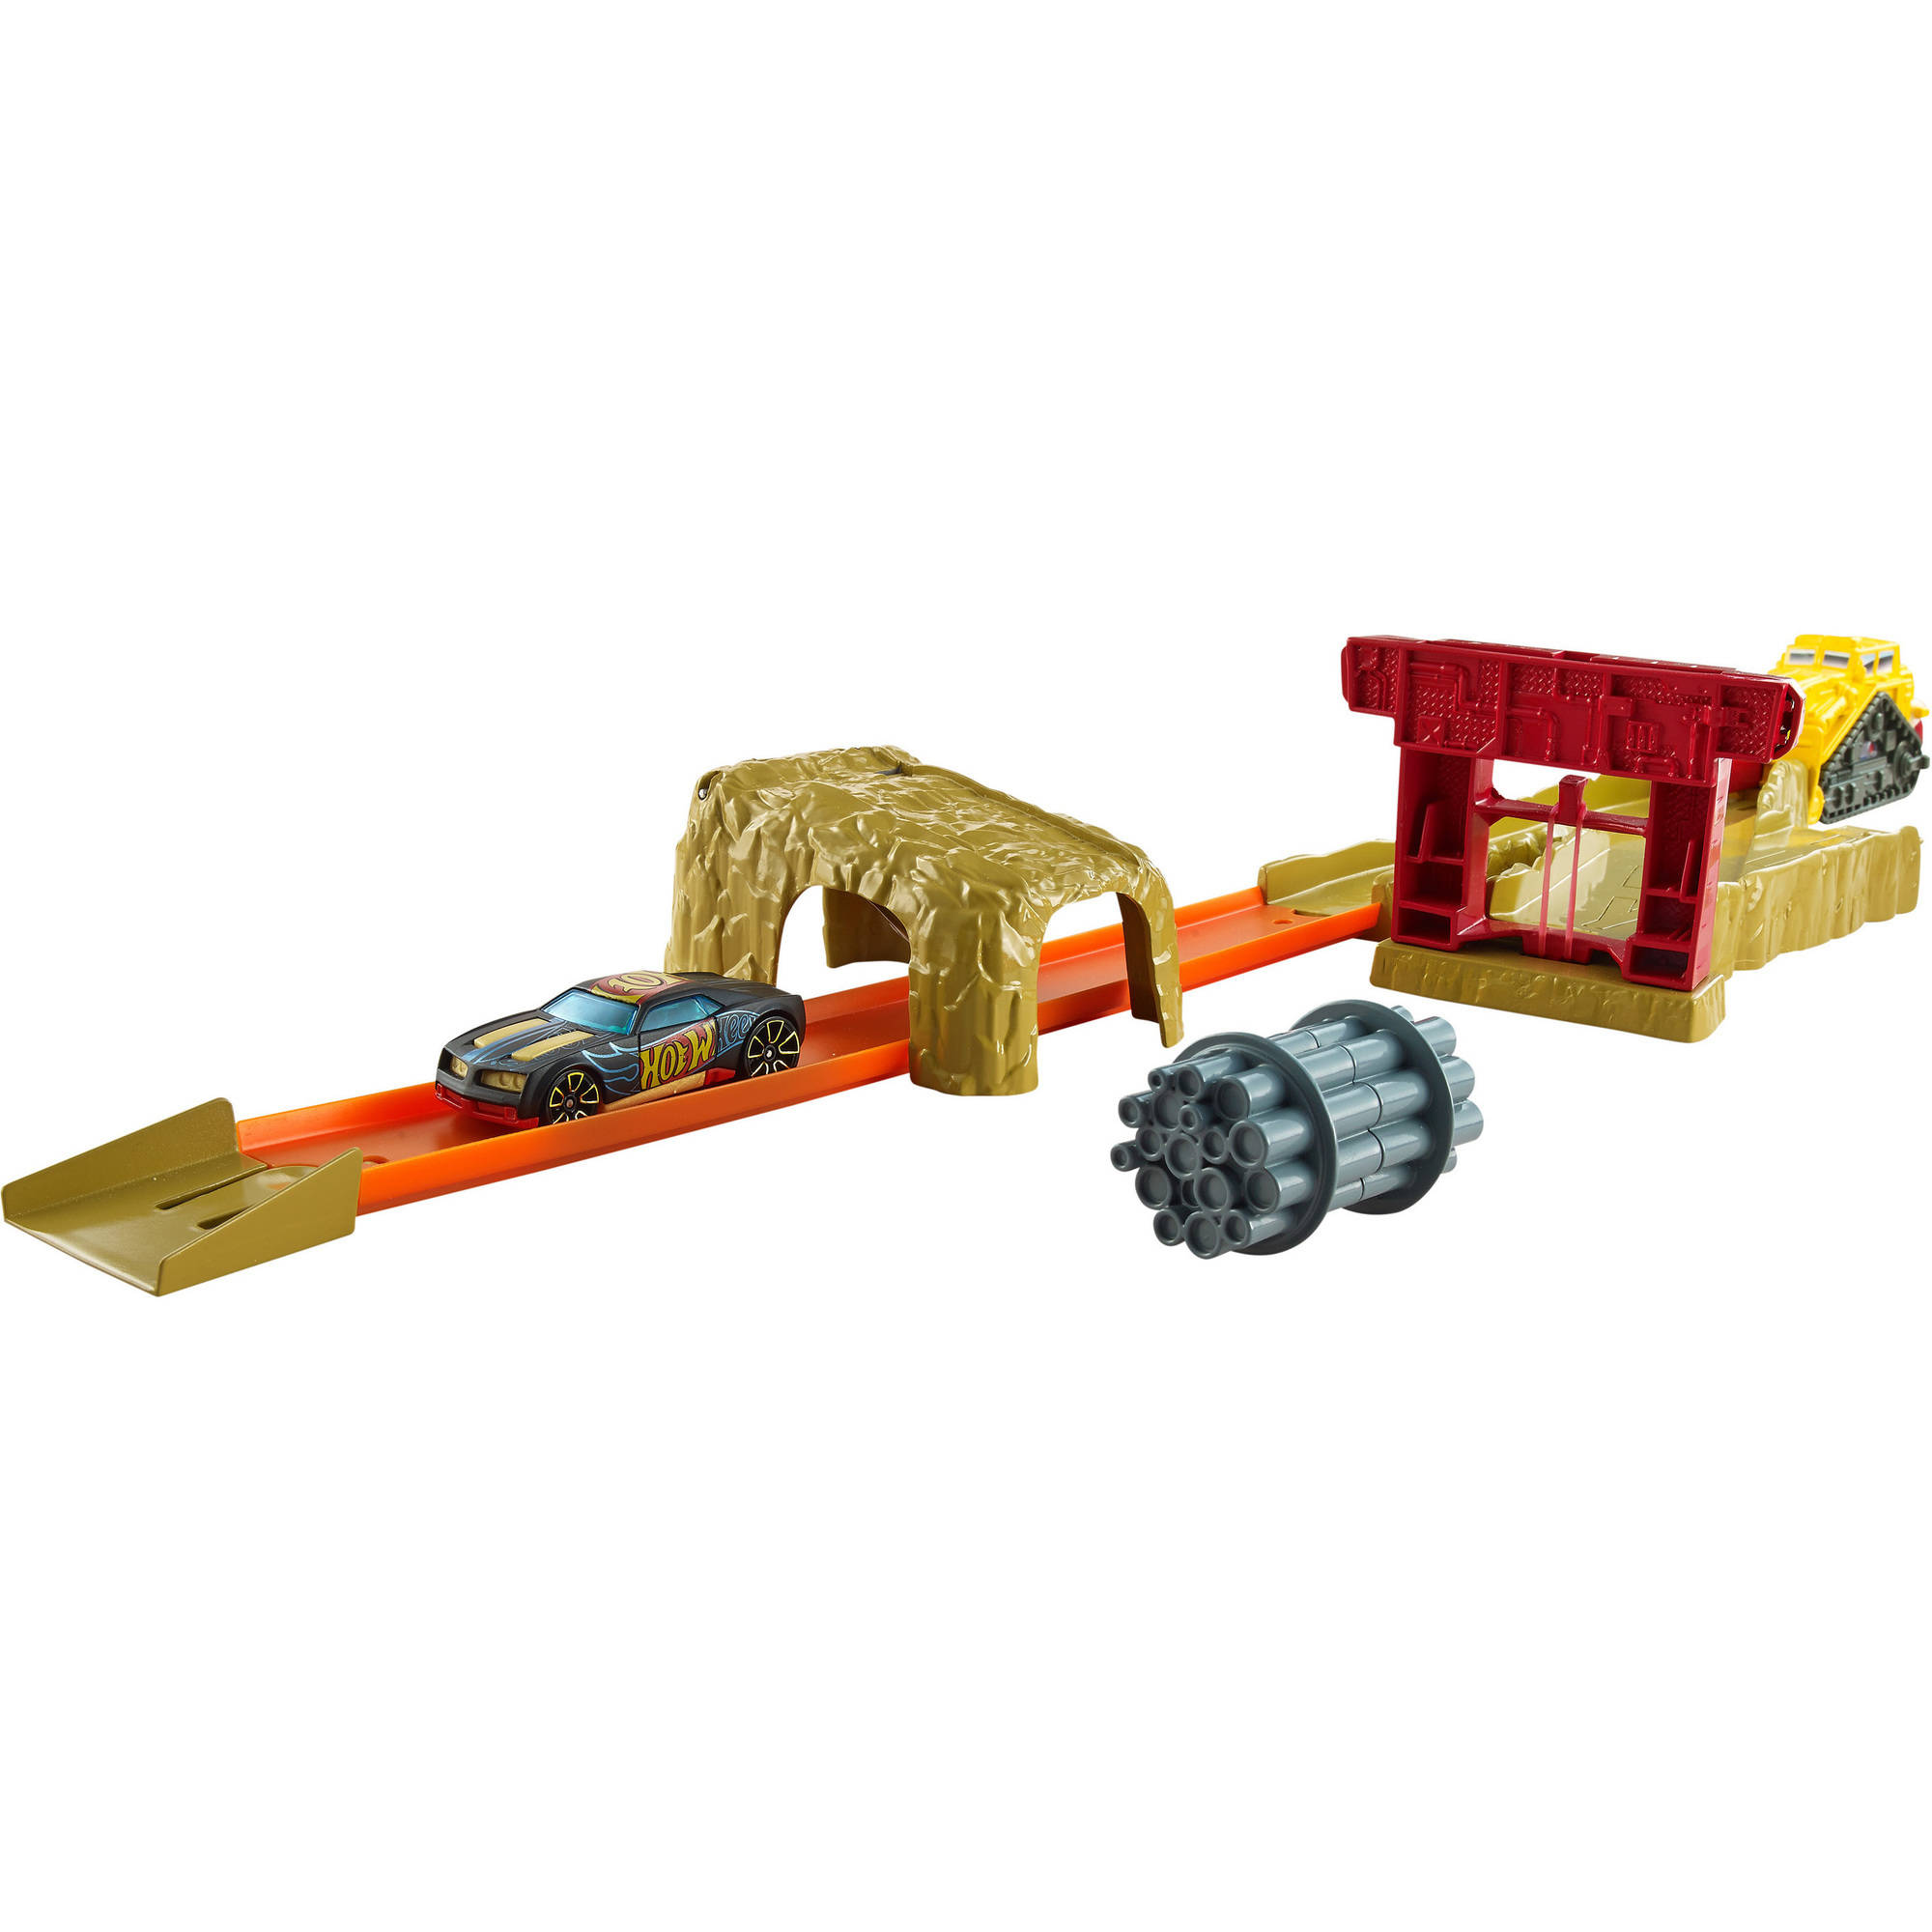 Hot Wheels Bulldoze Blast Trackset